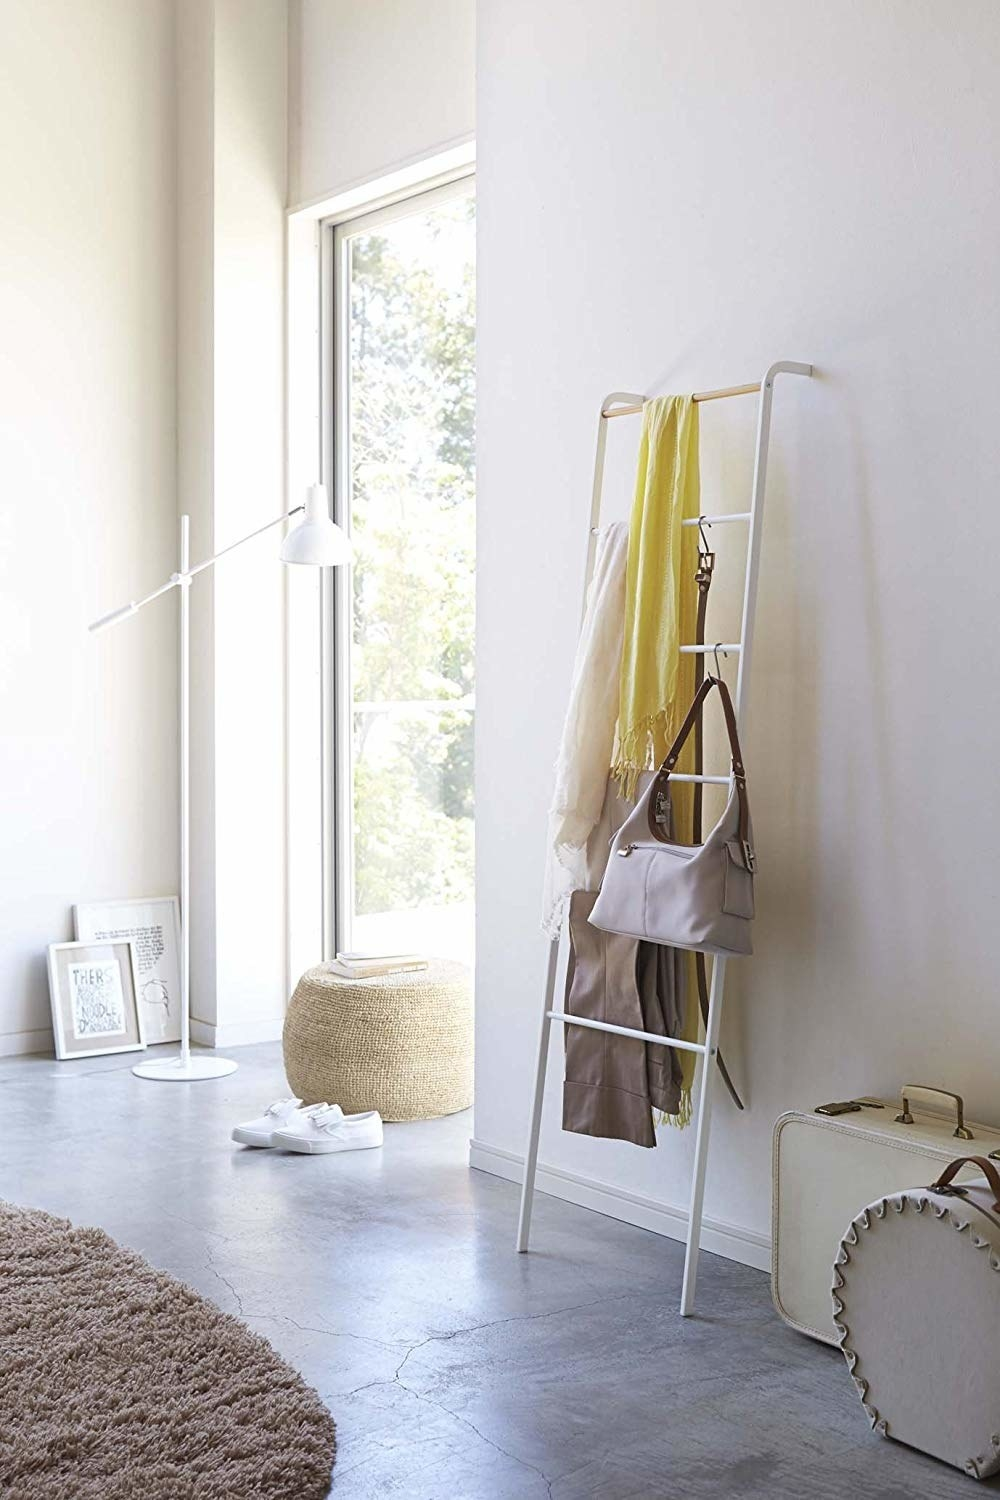 Leaning white ladder with scarves and purses hanging on it